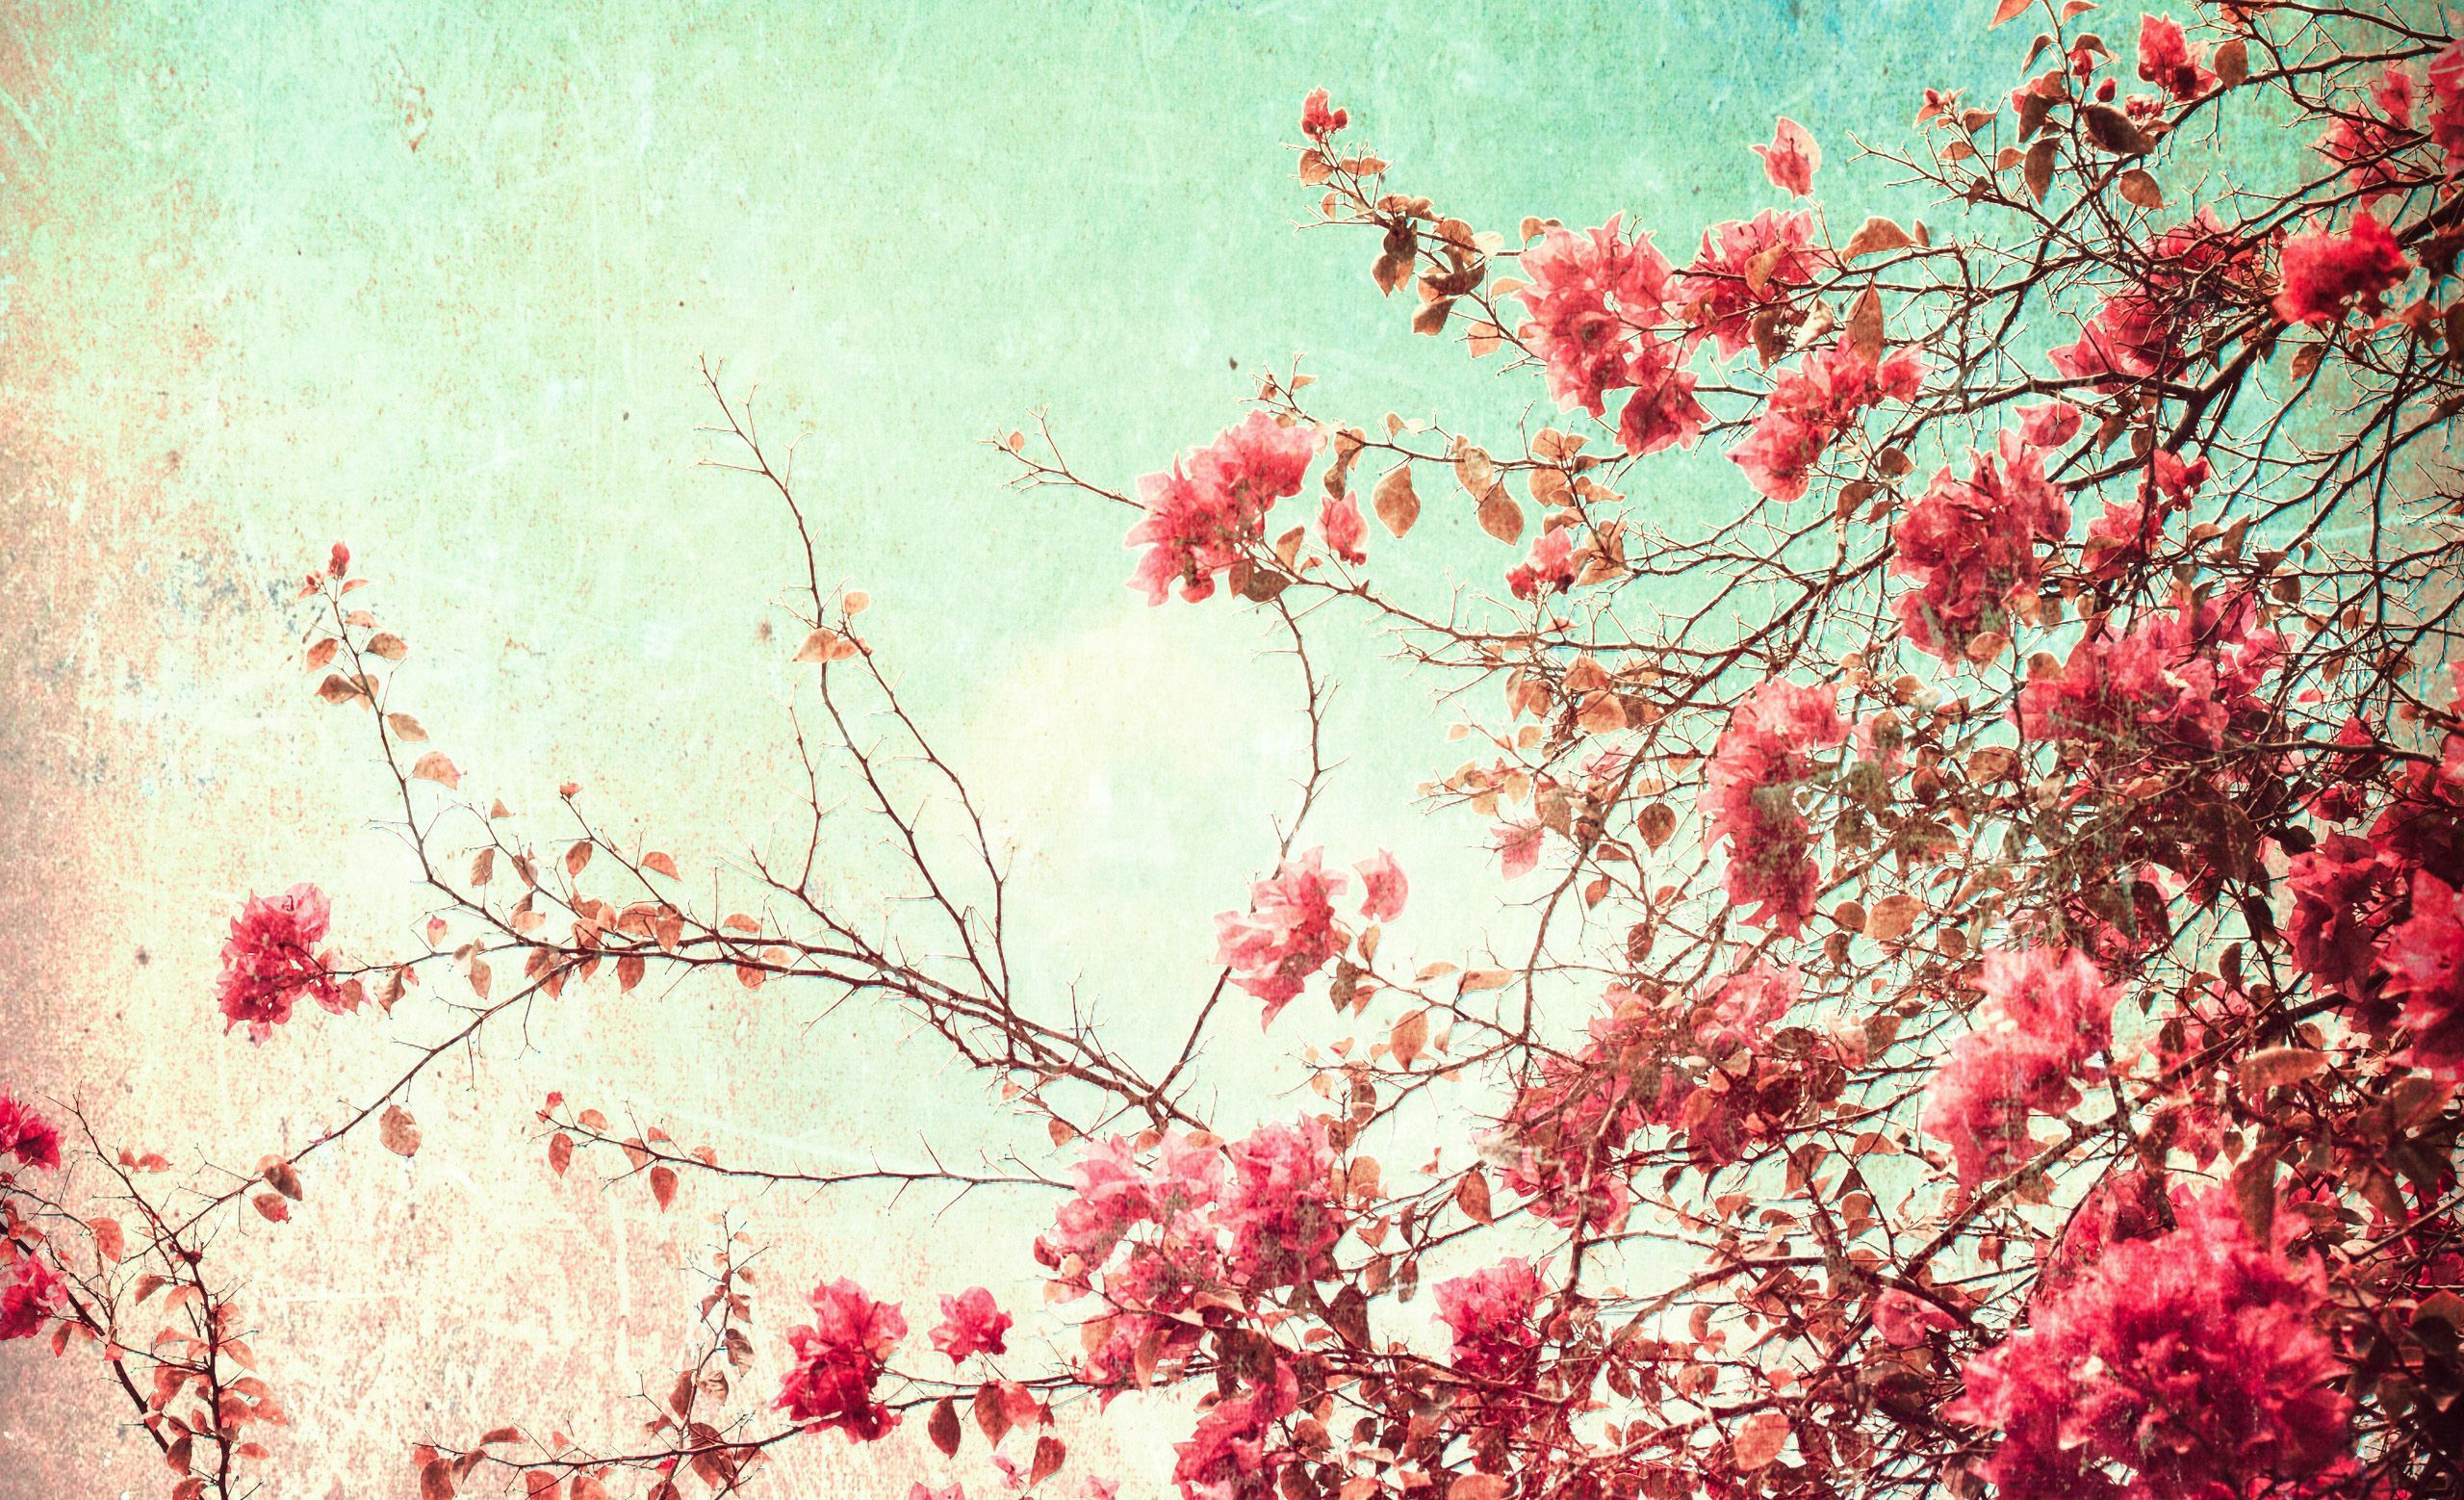 Vintage Aesthetic Pc Wallpapers Top Free Vintage Aesthetic Pc Backgrounds Wallpaperaccess